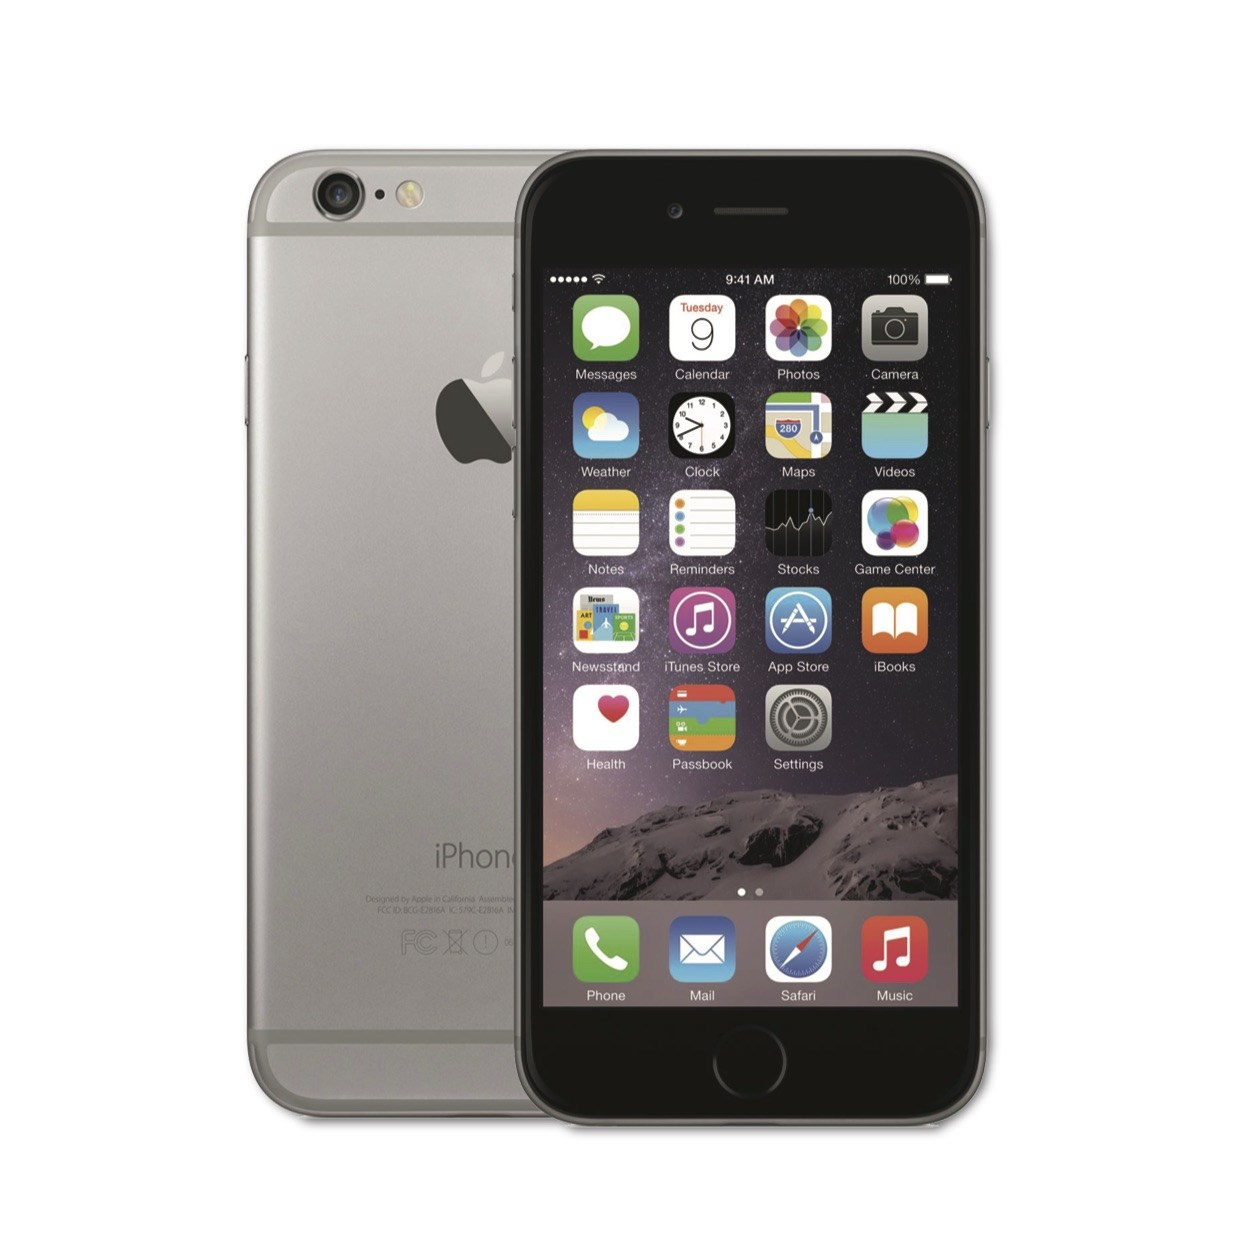 iPhone 6 Space Grey - trangthienlong.com.vn